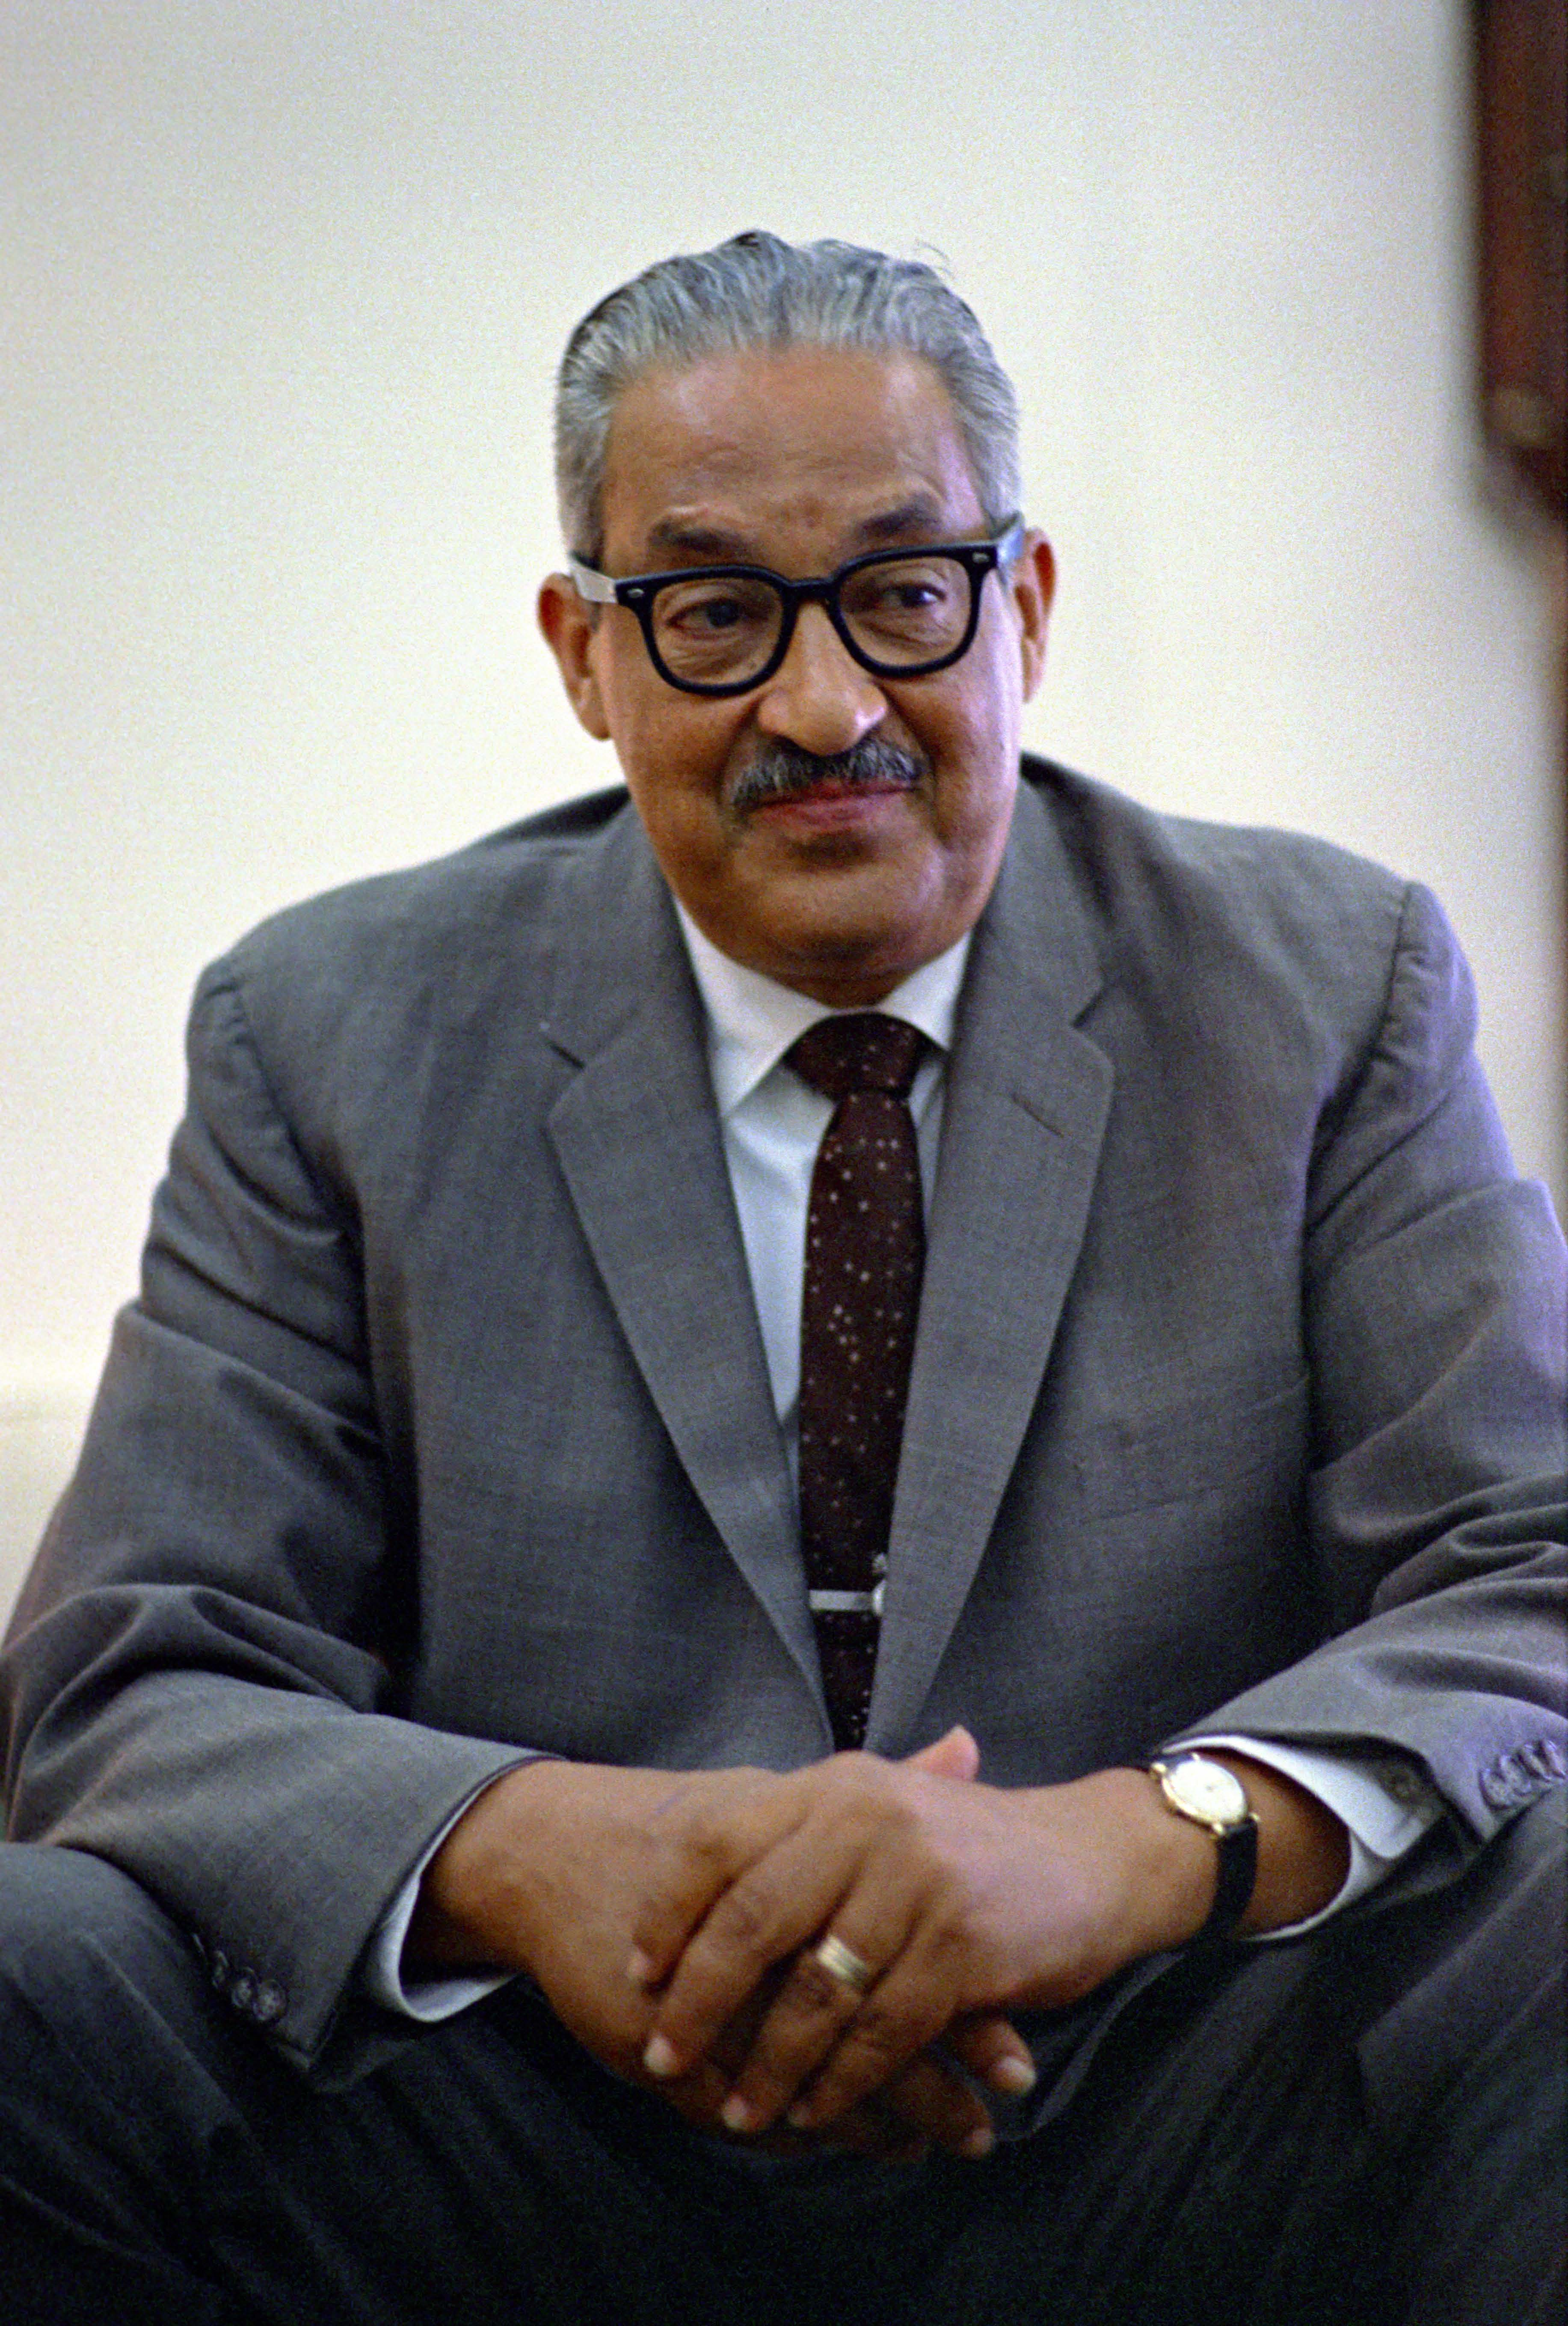 thurgood marshall Thurgood marshall born: july 2, 1908 died: january 24, 1993 thurgood marshall was the first african-american member of the us supreme court he served on the court from 1967 until he.